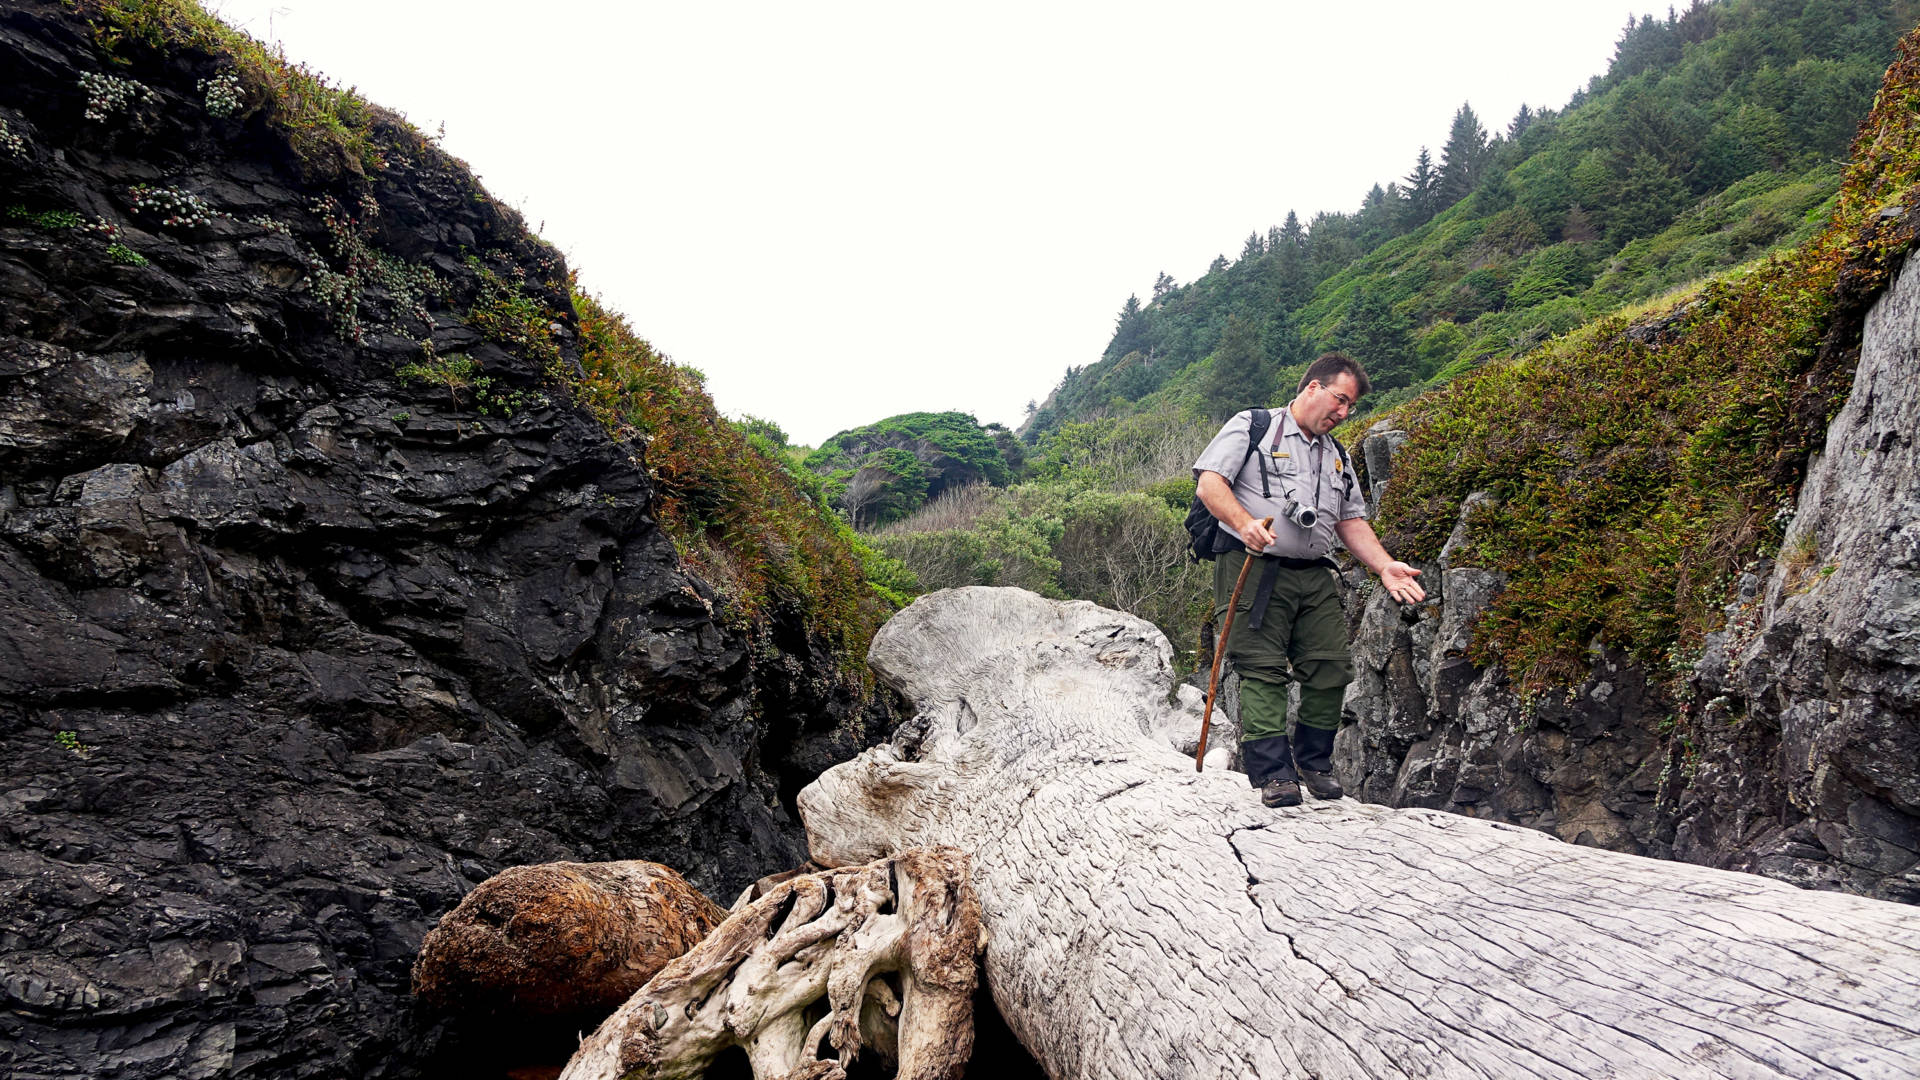 Michael Peterson, an archaeologist at Redwood National Park in California, photographs the coastline annually to monitor erosion of archaeological sites. Jes Burns/OPB/EarthFix